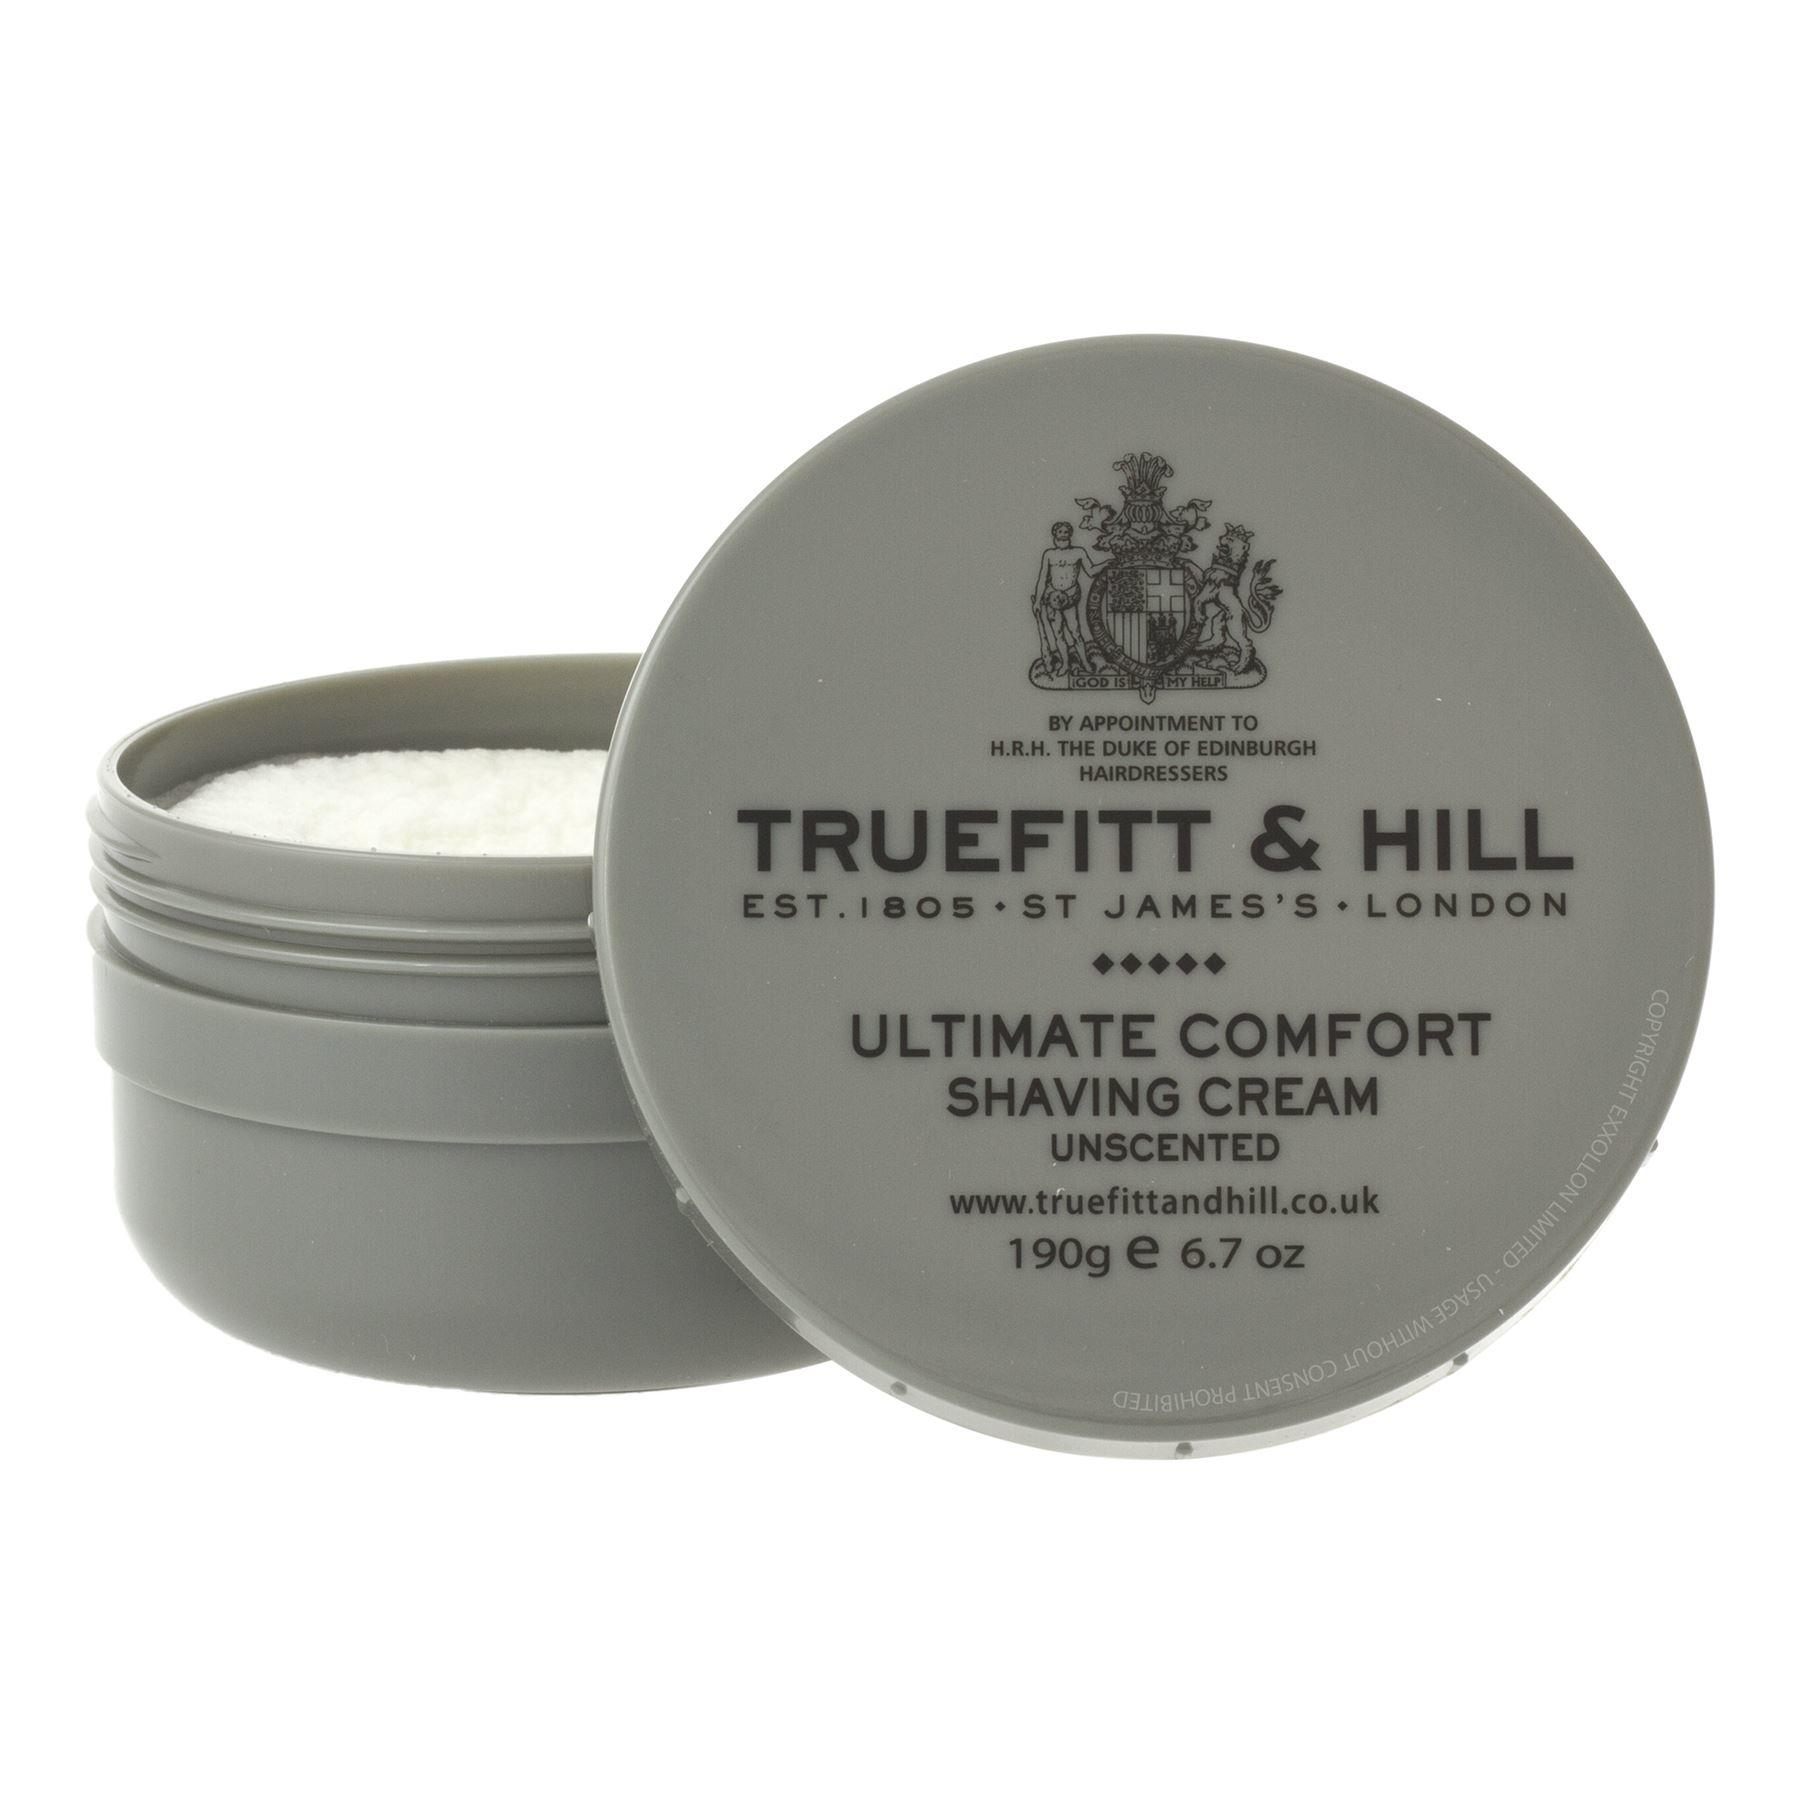 Truefitt & Hill Ultimate Comfort Shaving Cream Bowl